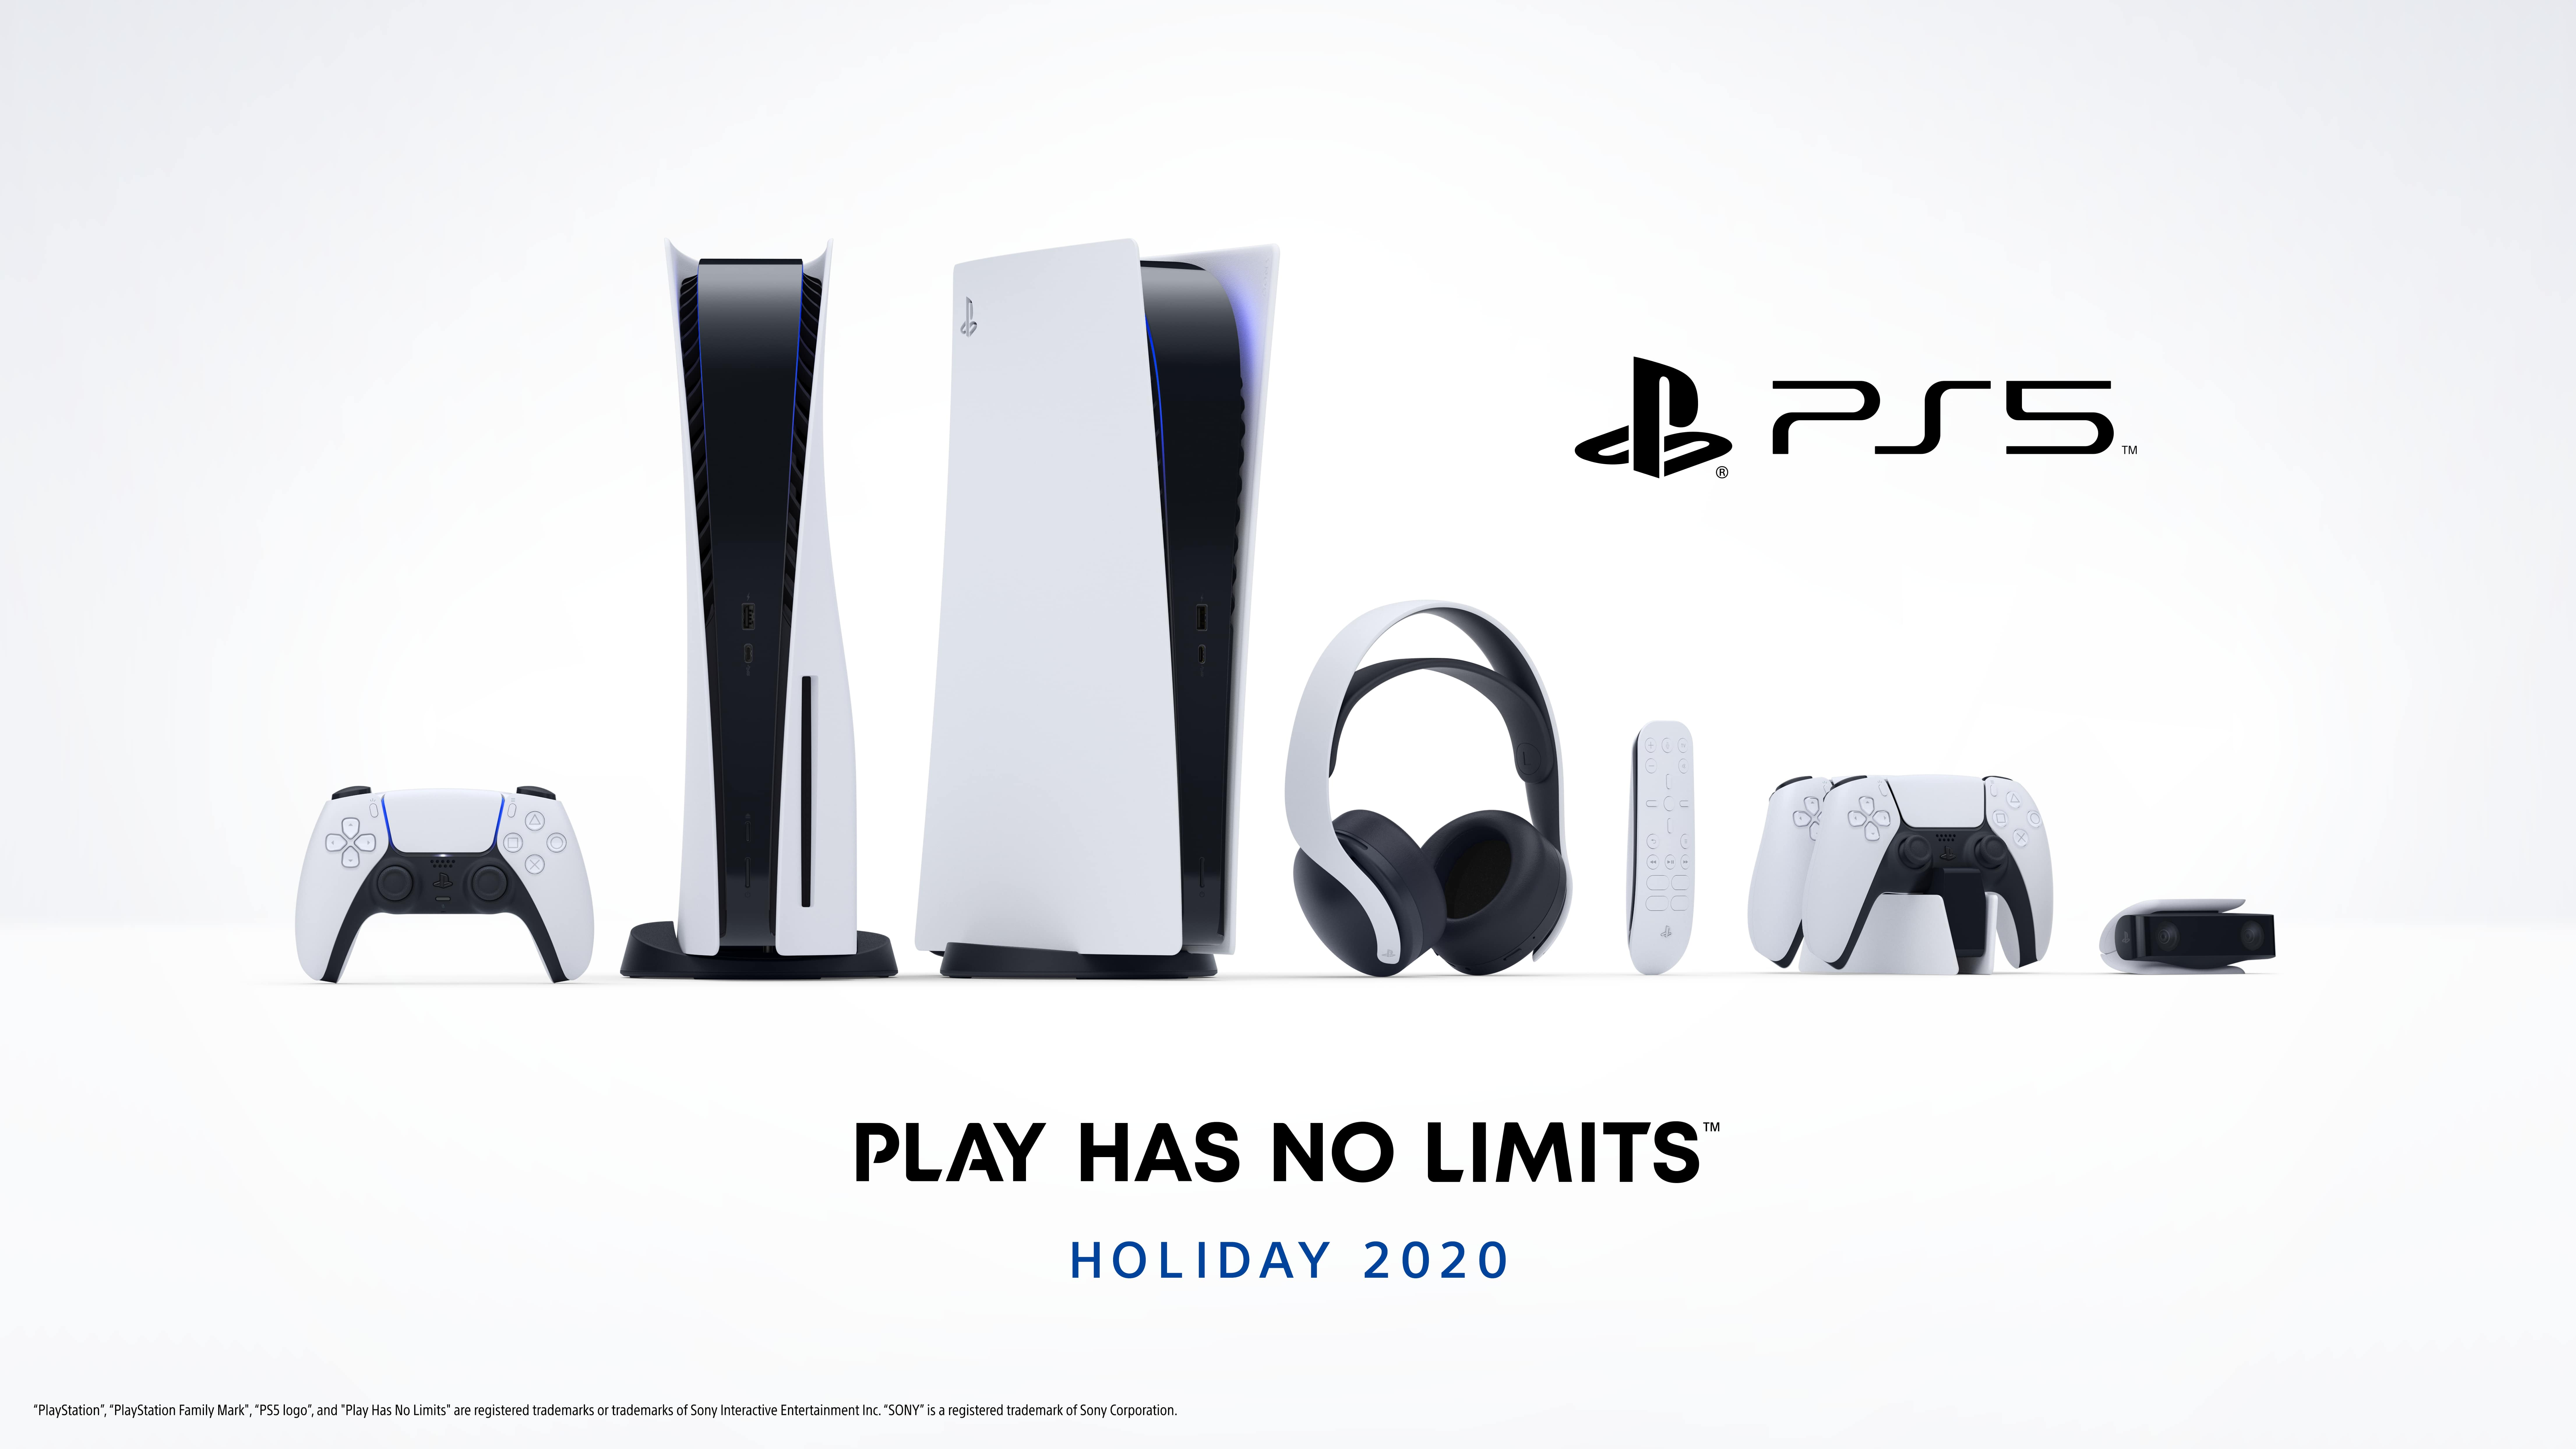 PlayStation 5 consoles and peripherals